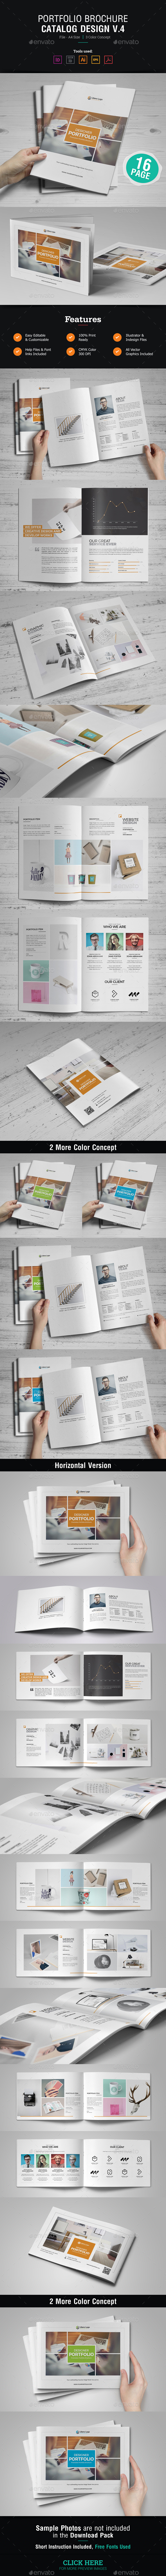 Portfolio Brochure Design v4 - Corporate Brochures